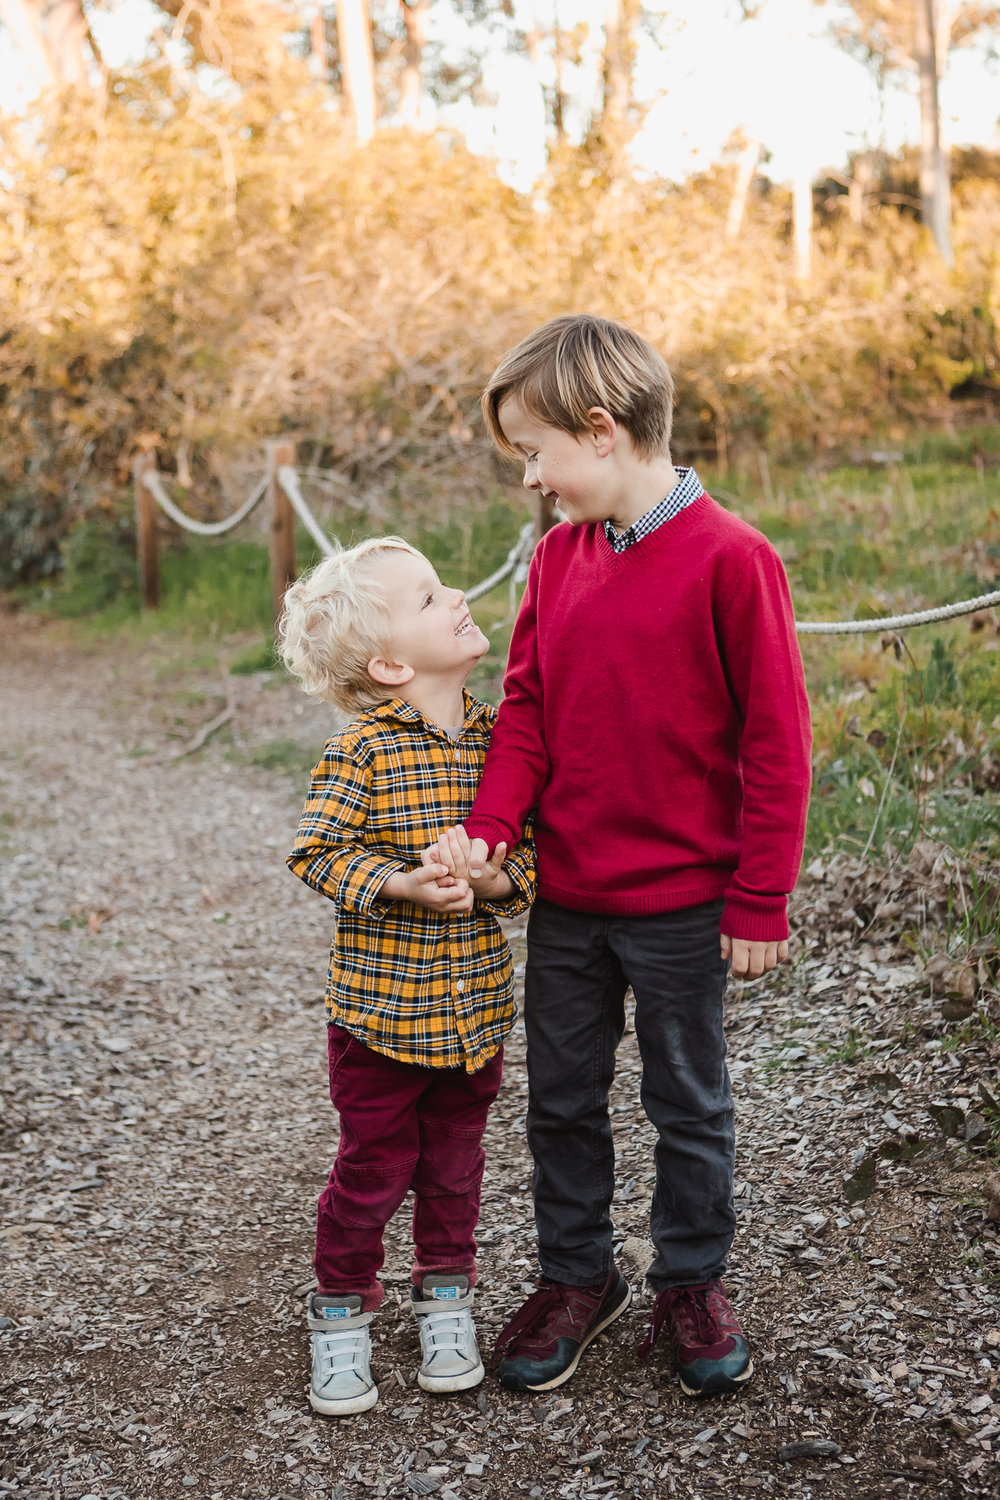 Little boys in brightly colored clothing holding hands looking at each other at San Dieguito Park in Encinitas, California. Encinitas family photographer, San Diego Family Photographer, Family photography in Southern California